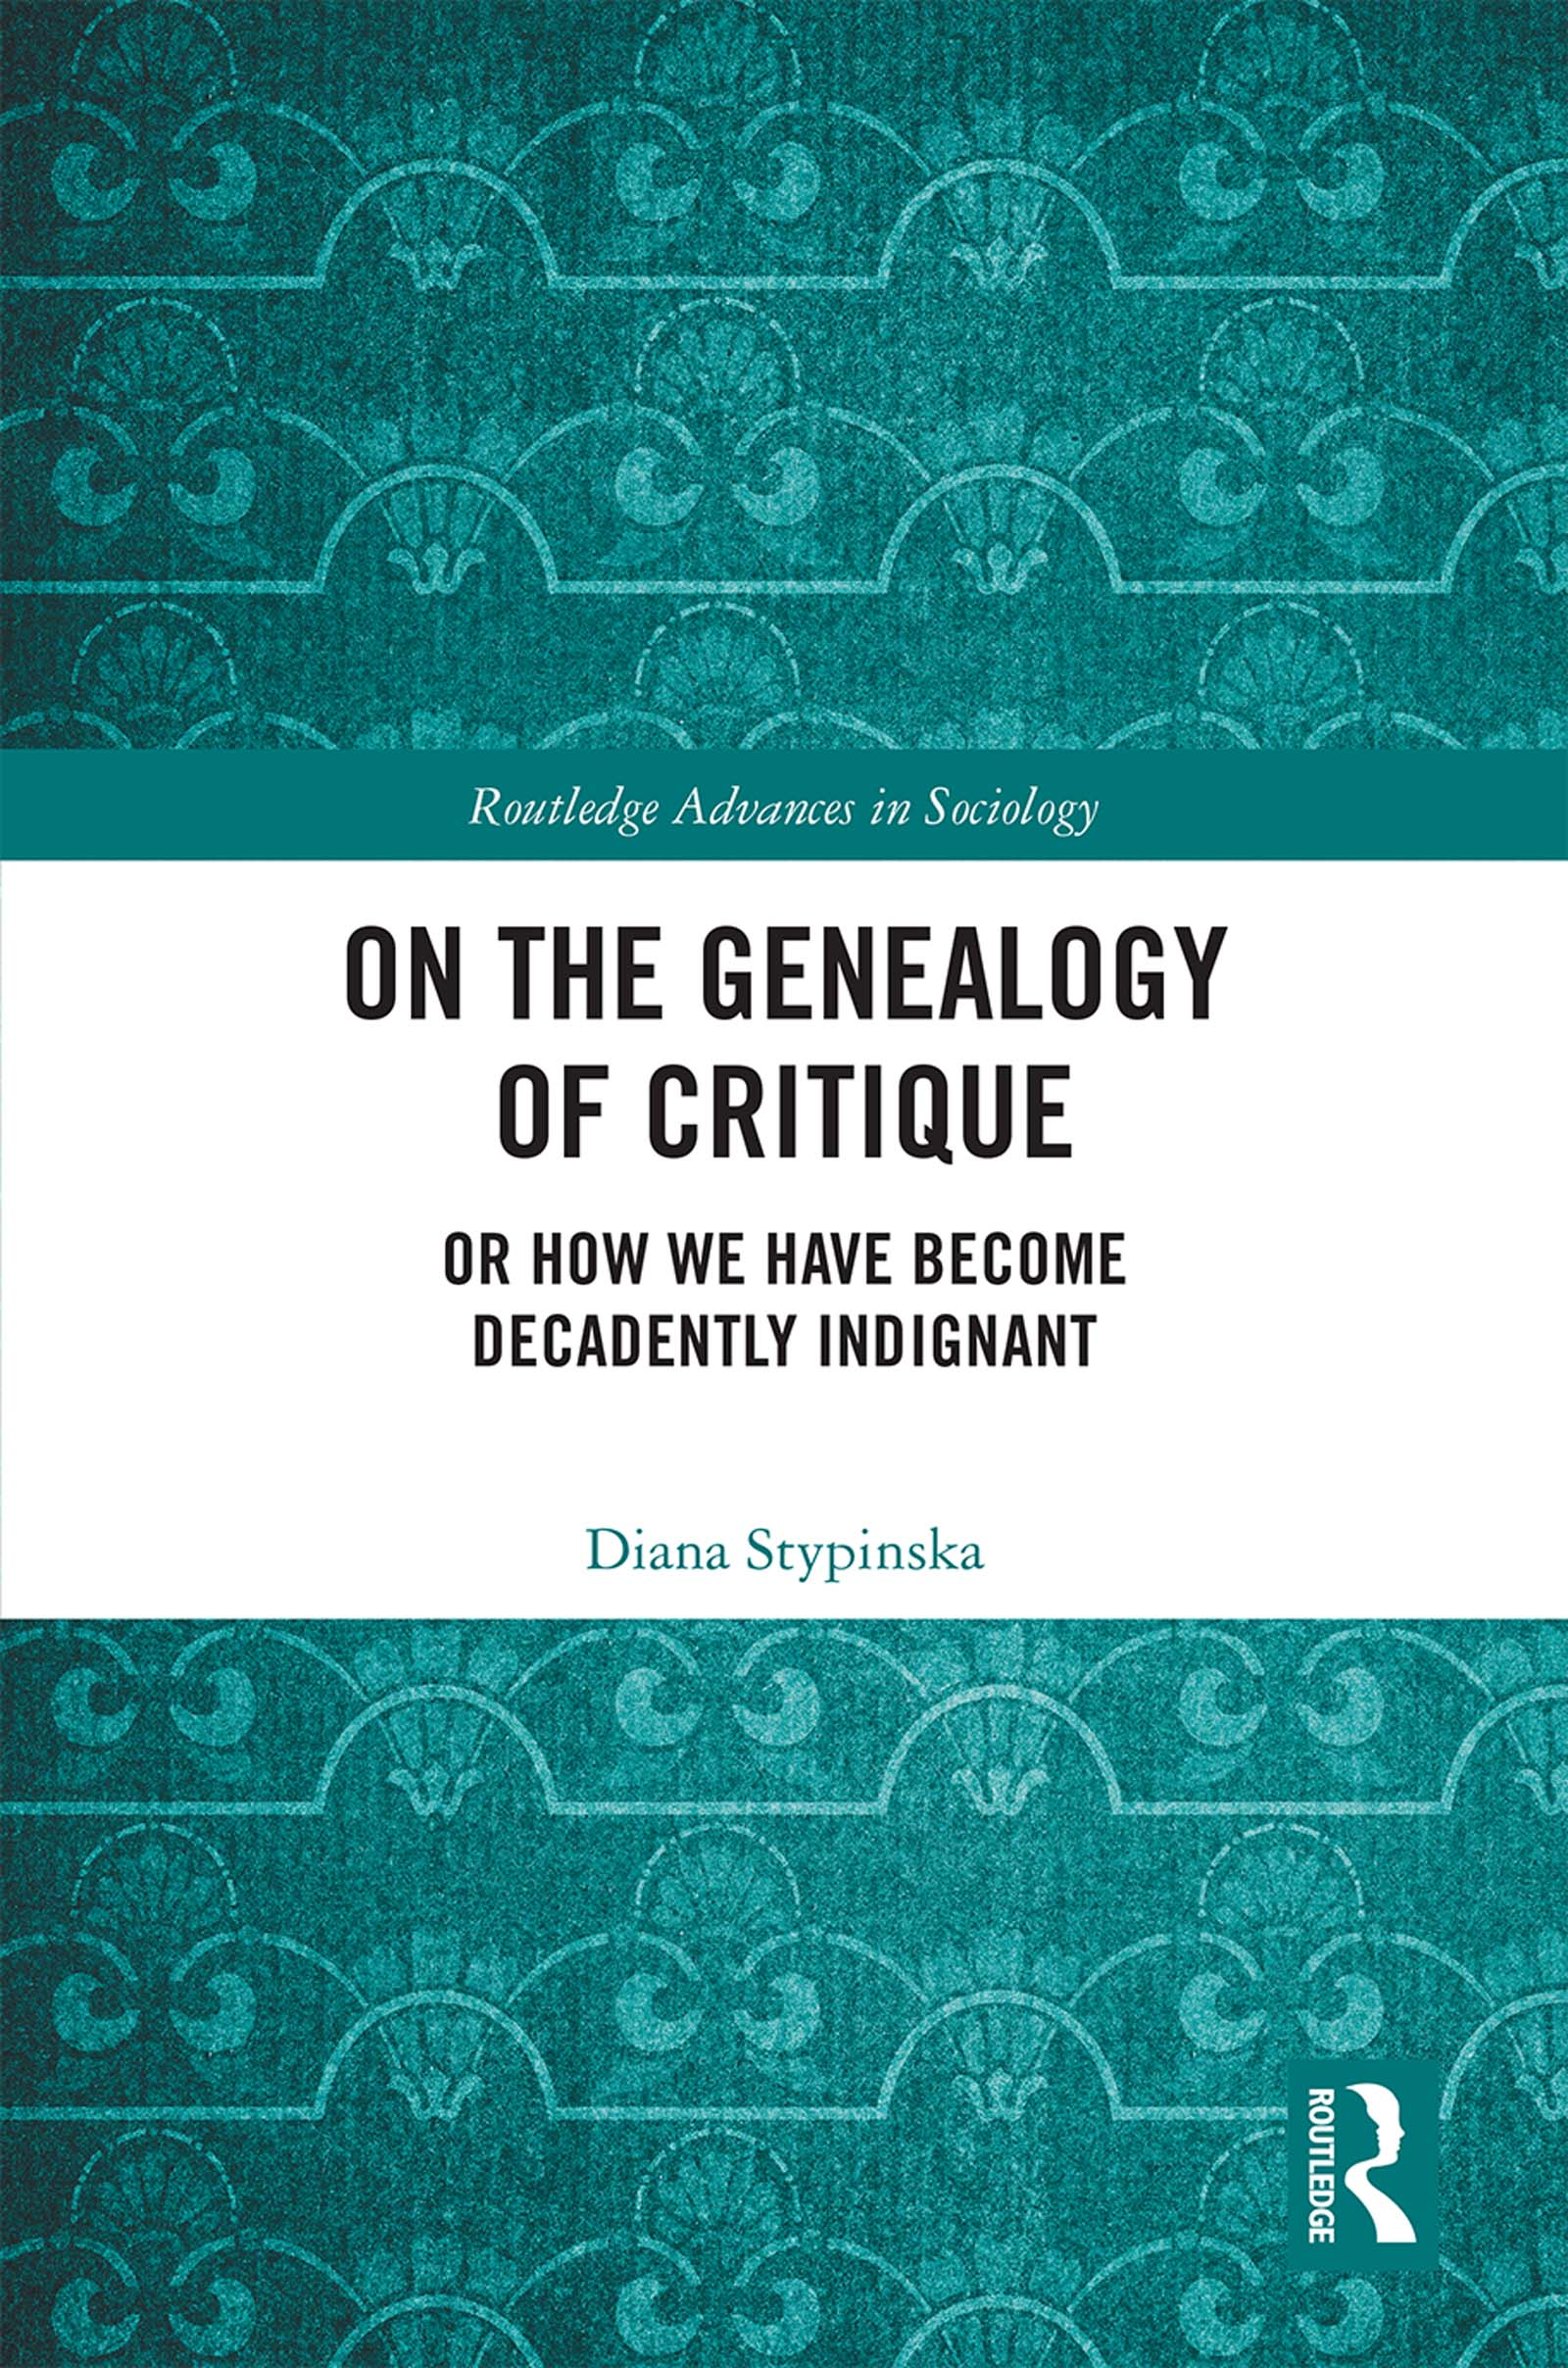 On the Genealogy of Critique